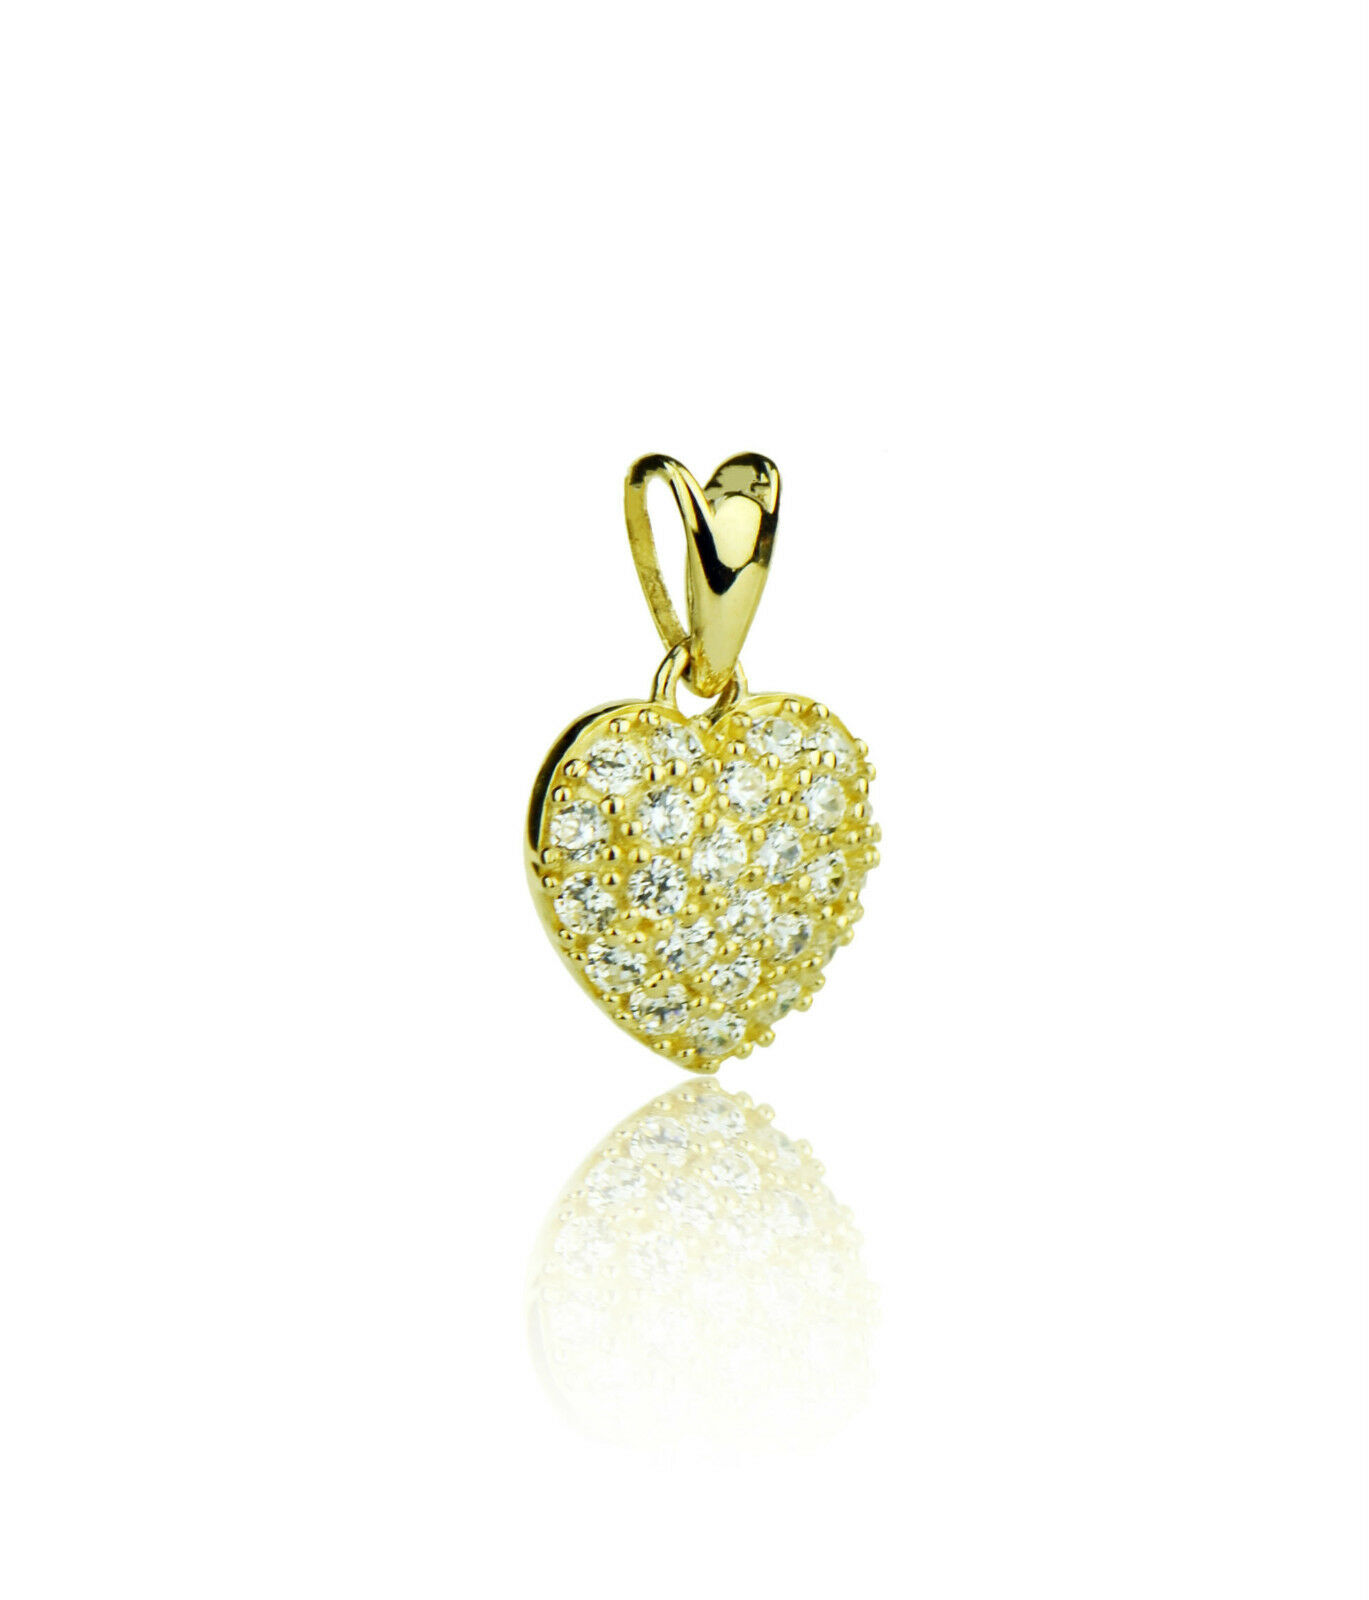 14k Yellow or White gold Cz Heart Pendant